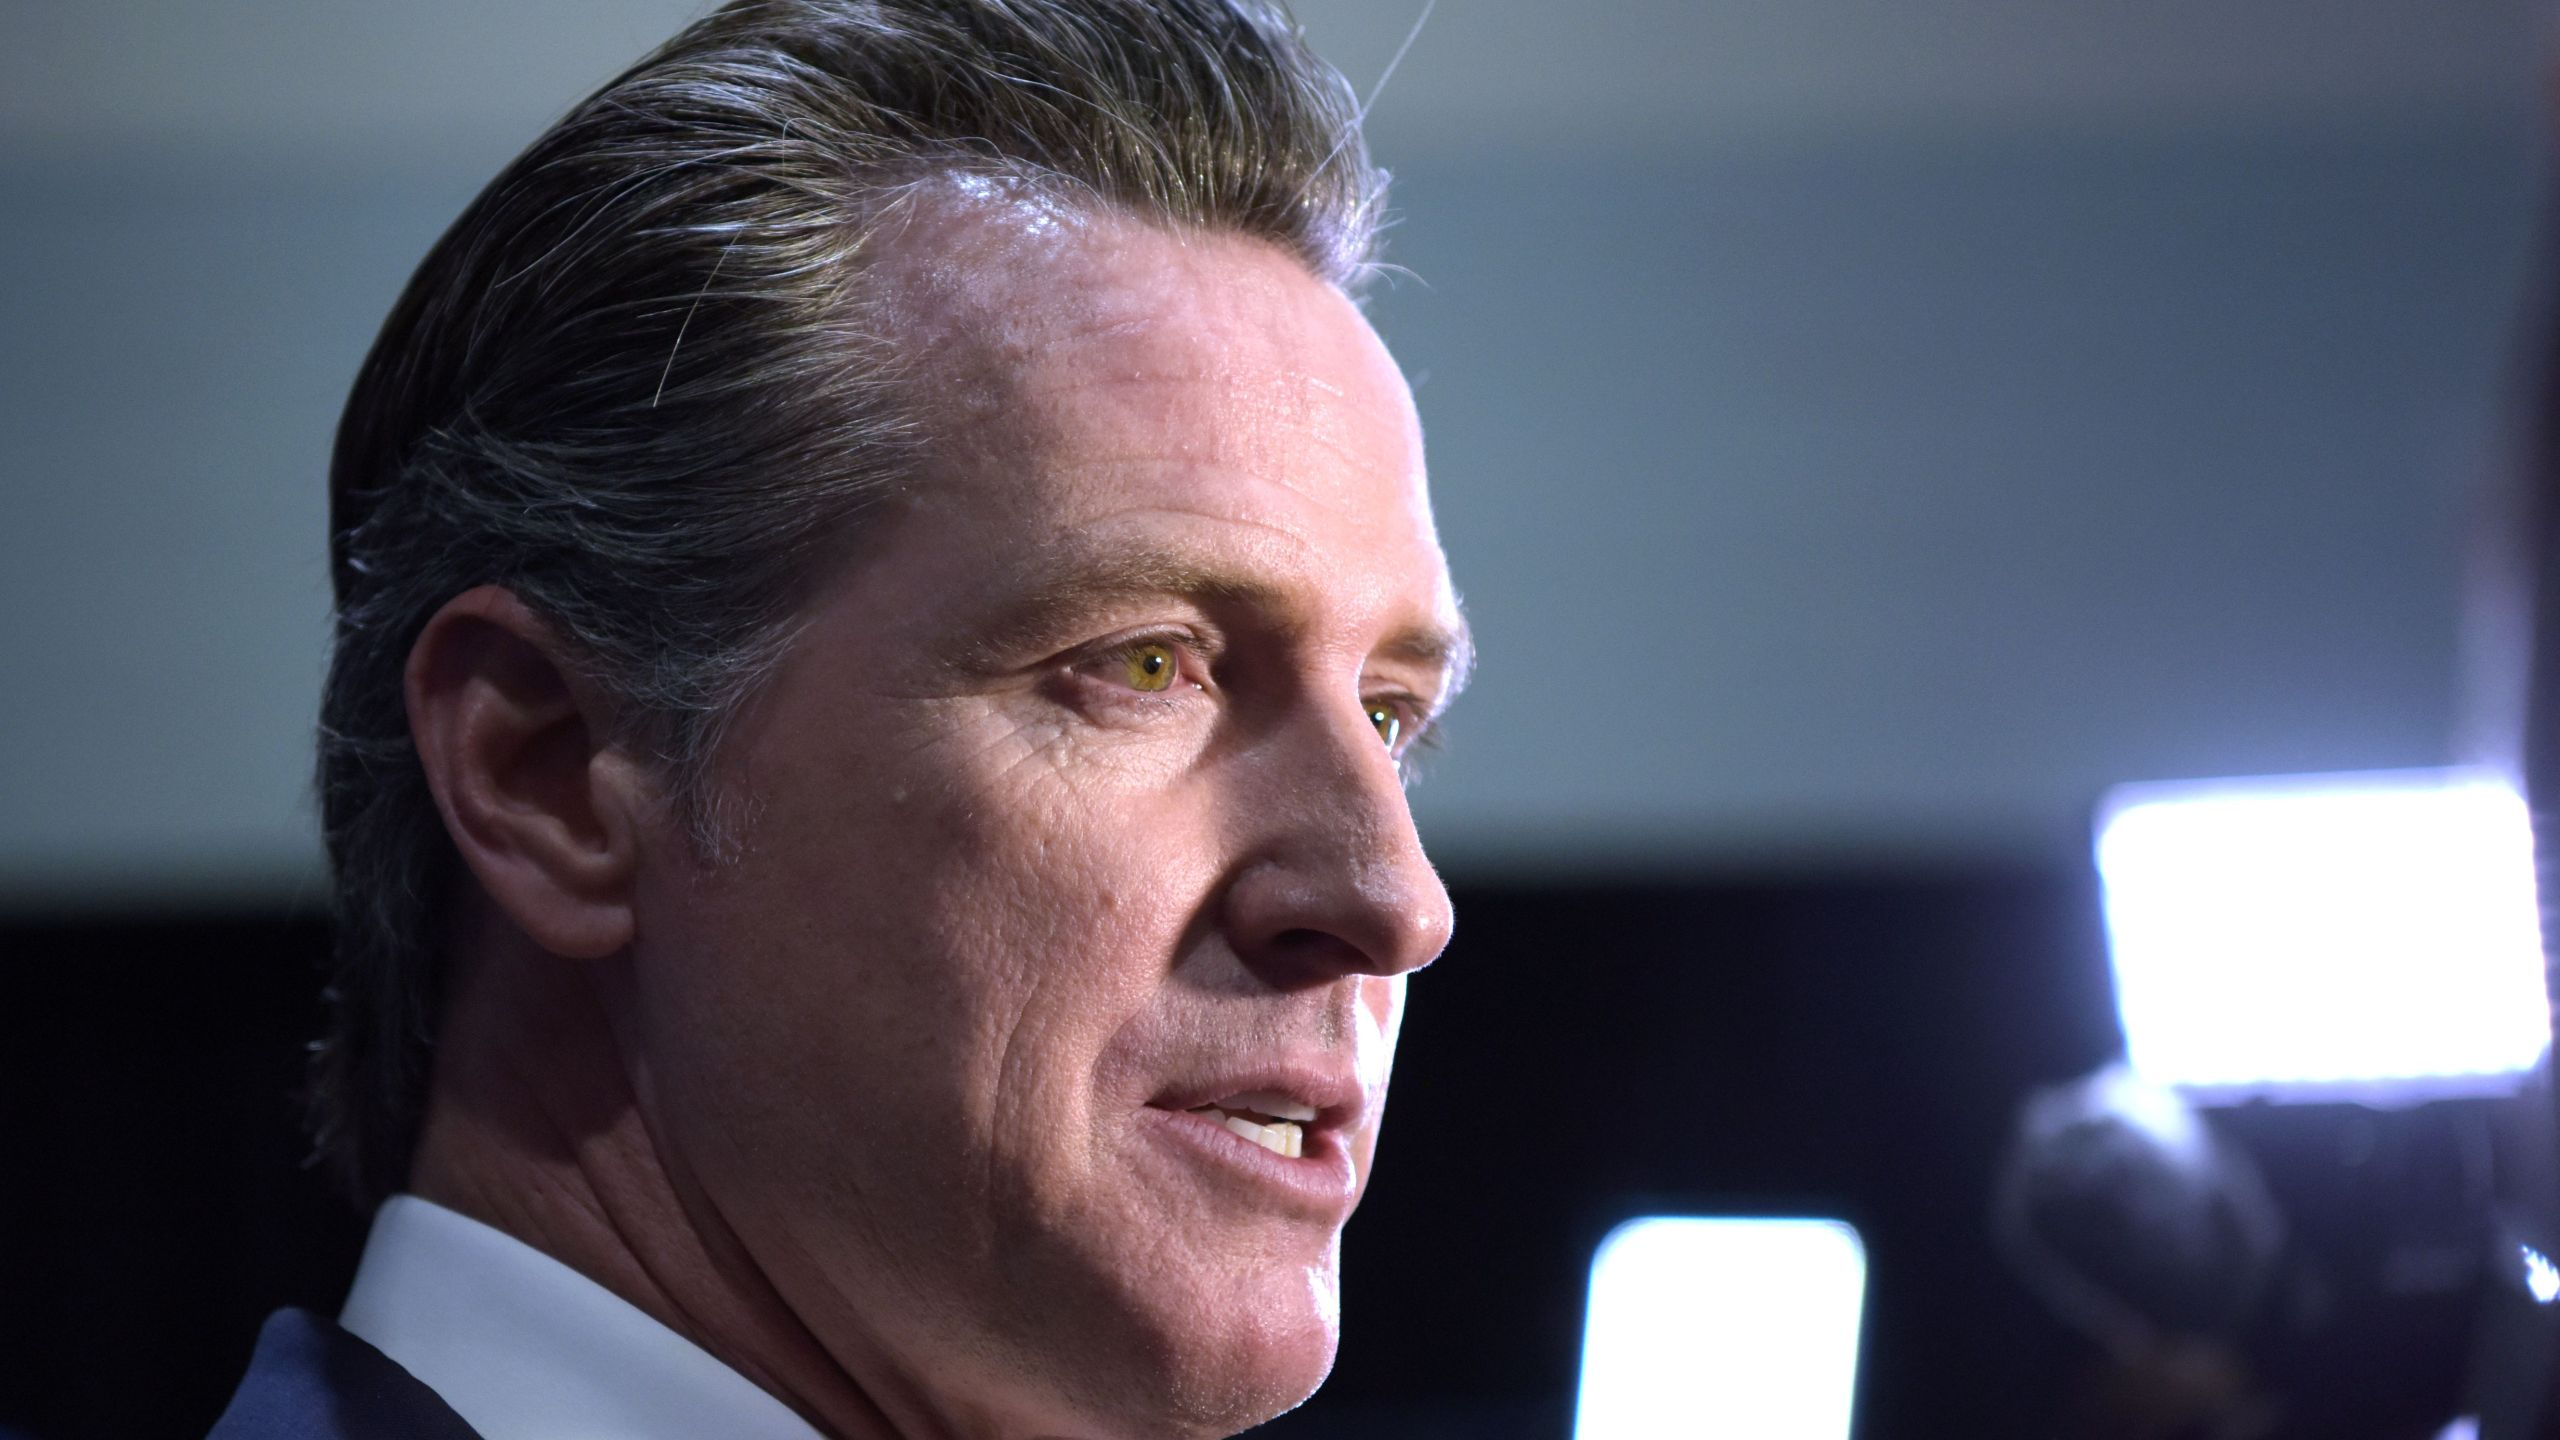 California Governor Gavin Newsom speaks to the press in the spin room at Loyola Marymount University in Los Angeles on Dec. 19, 2019. (AGUSTIN PAULLIER/AFP via Getty Images)